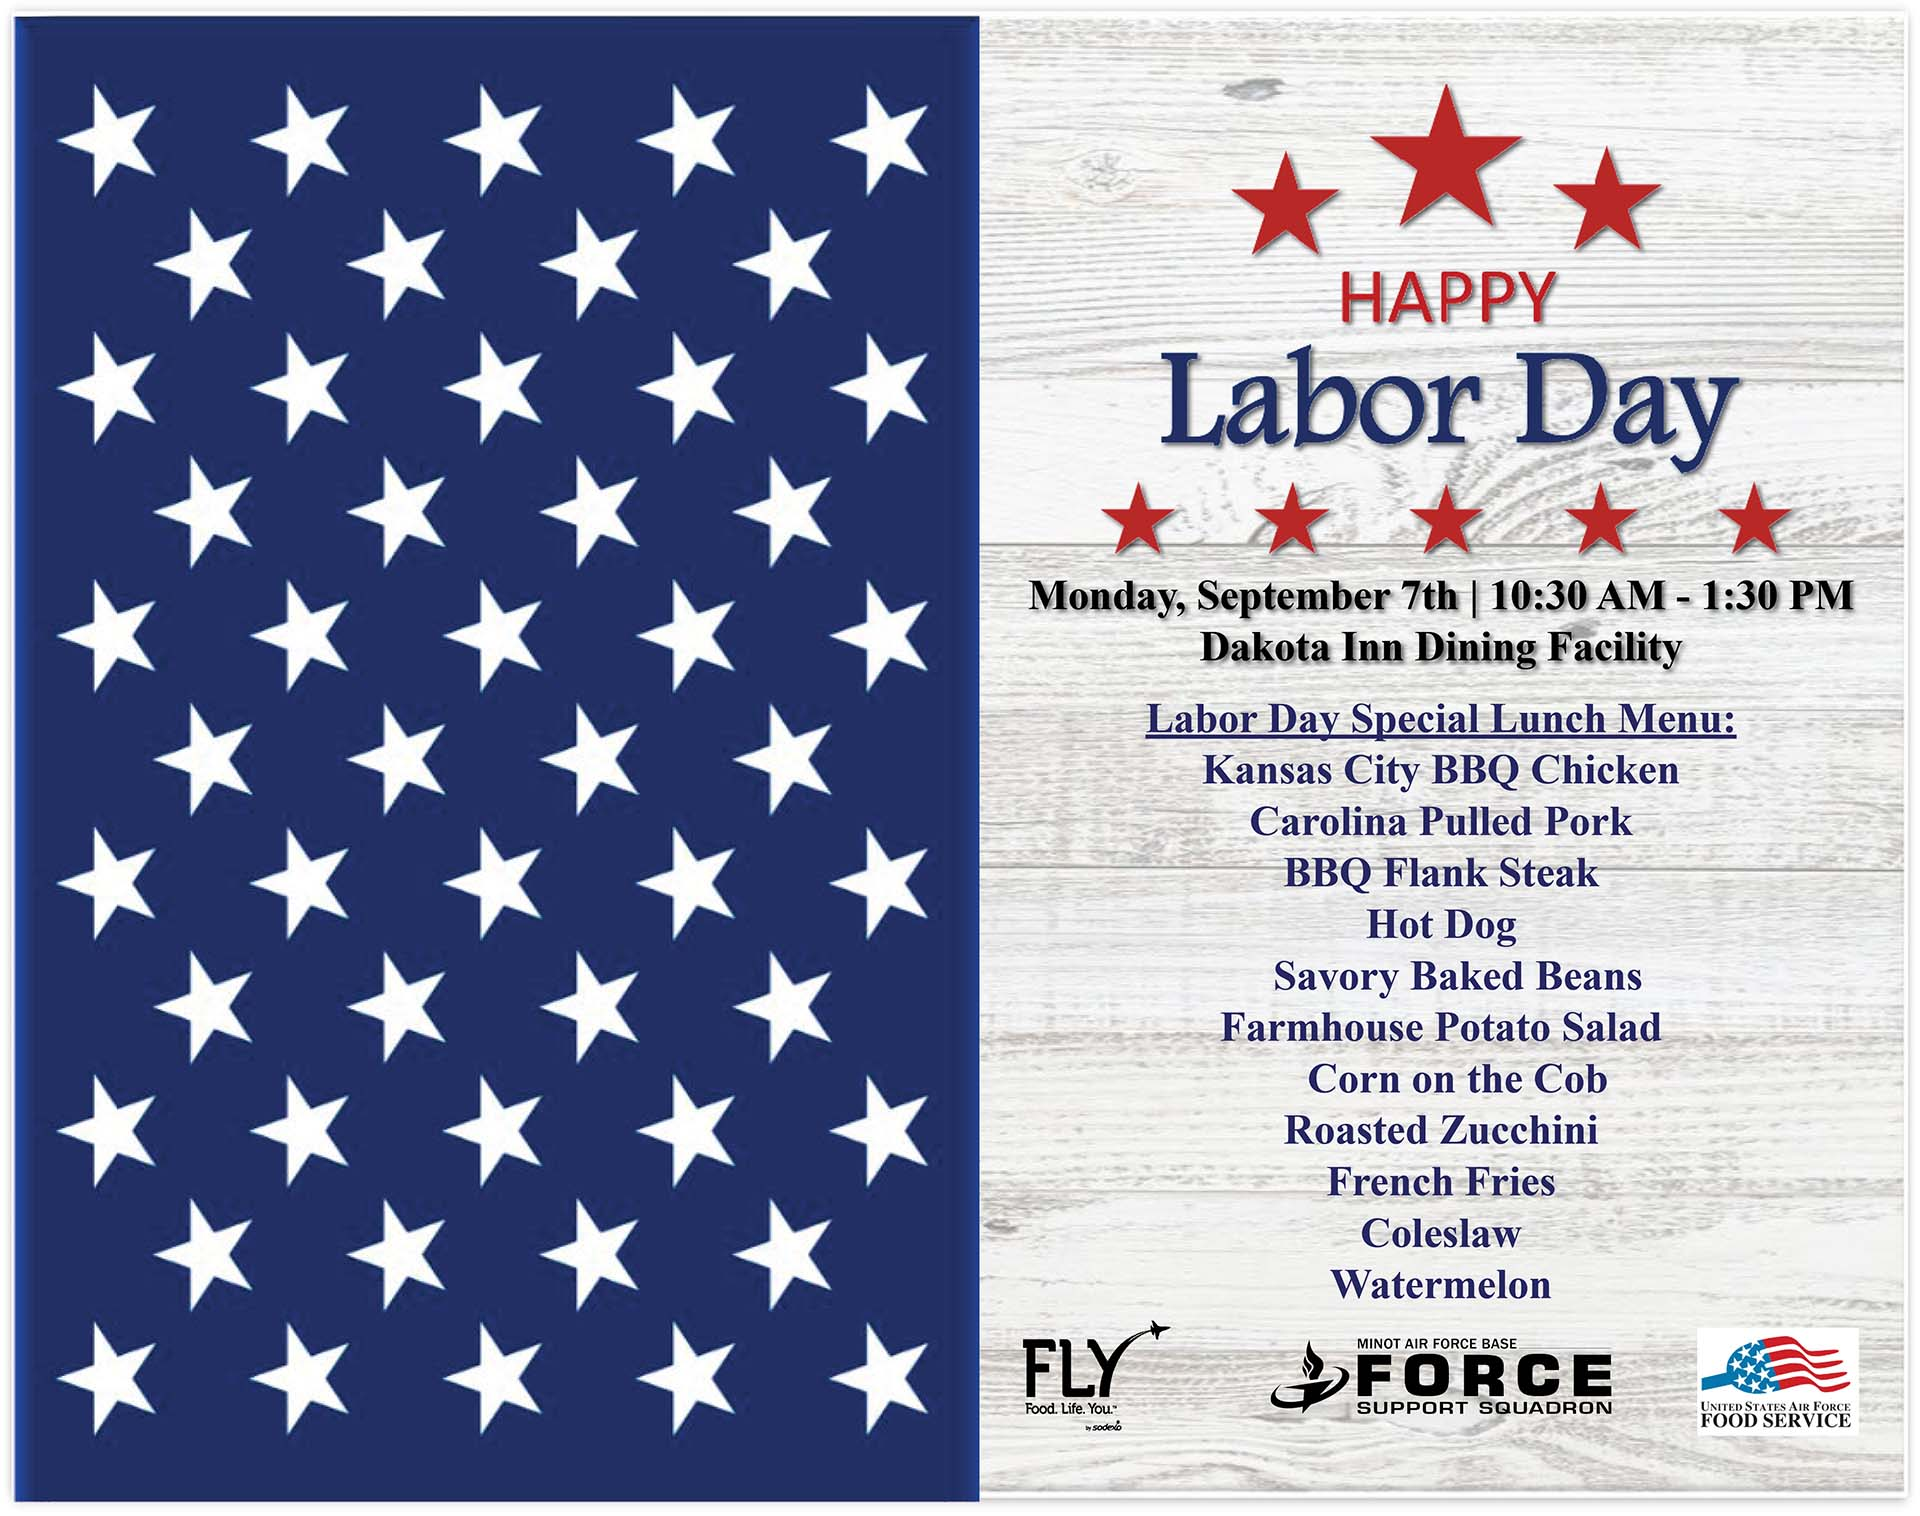 Labor Day Special Lunch